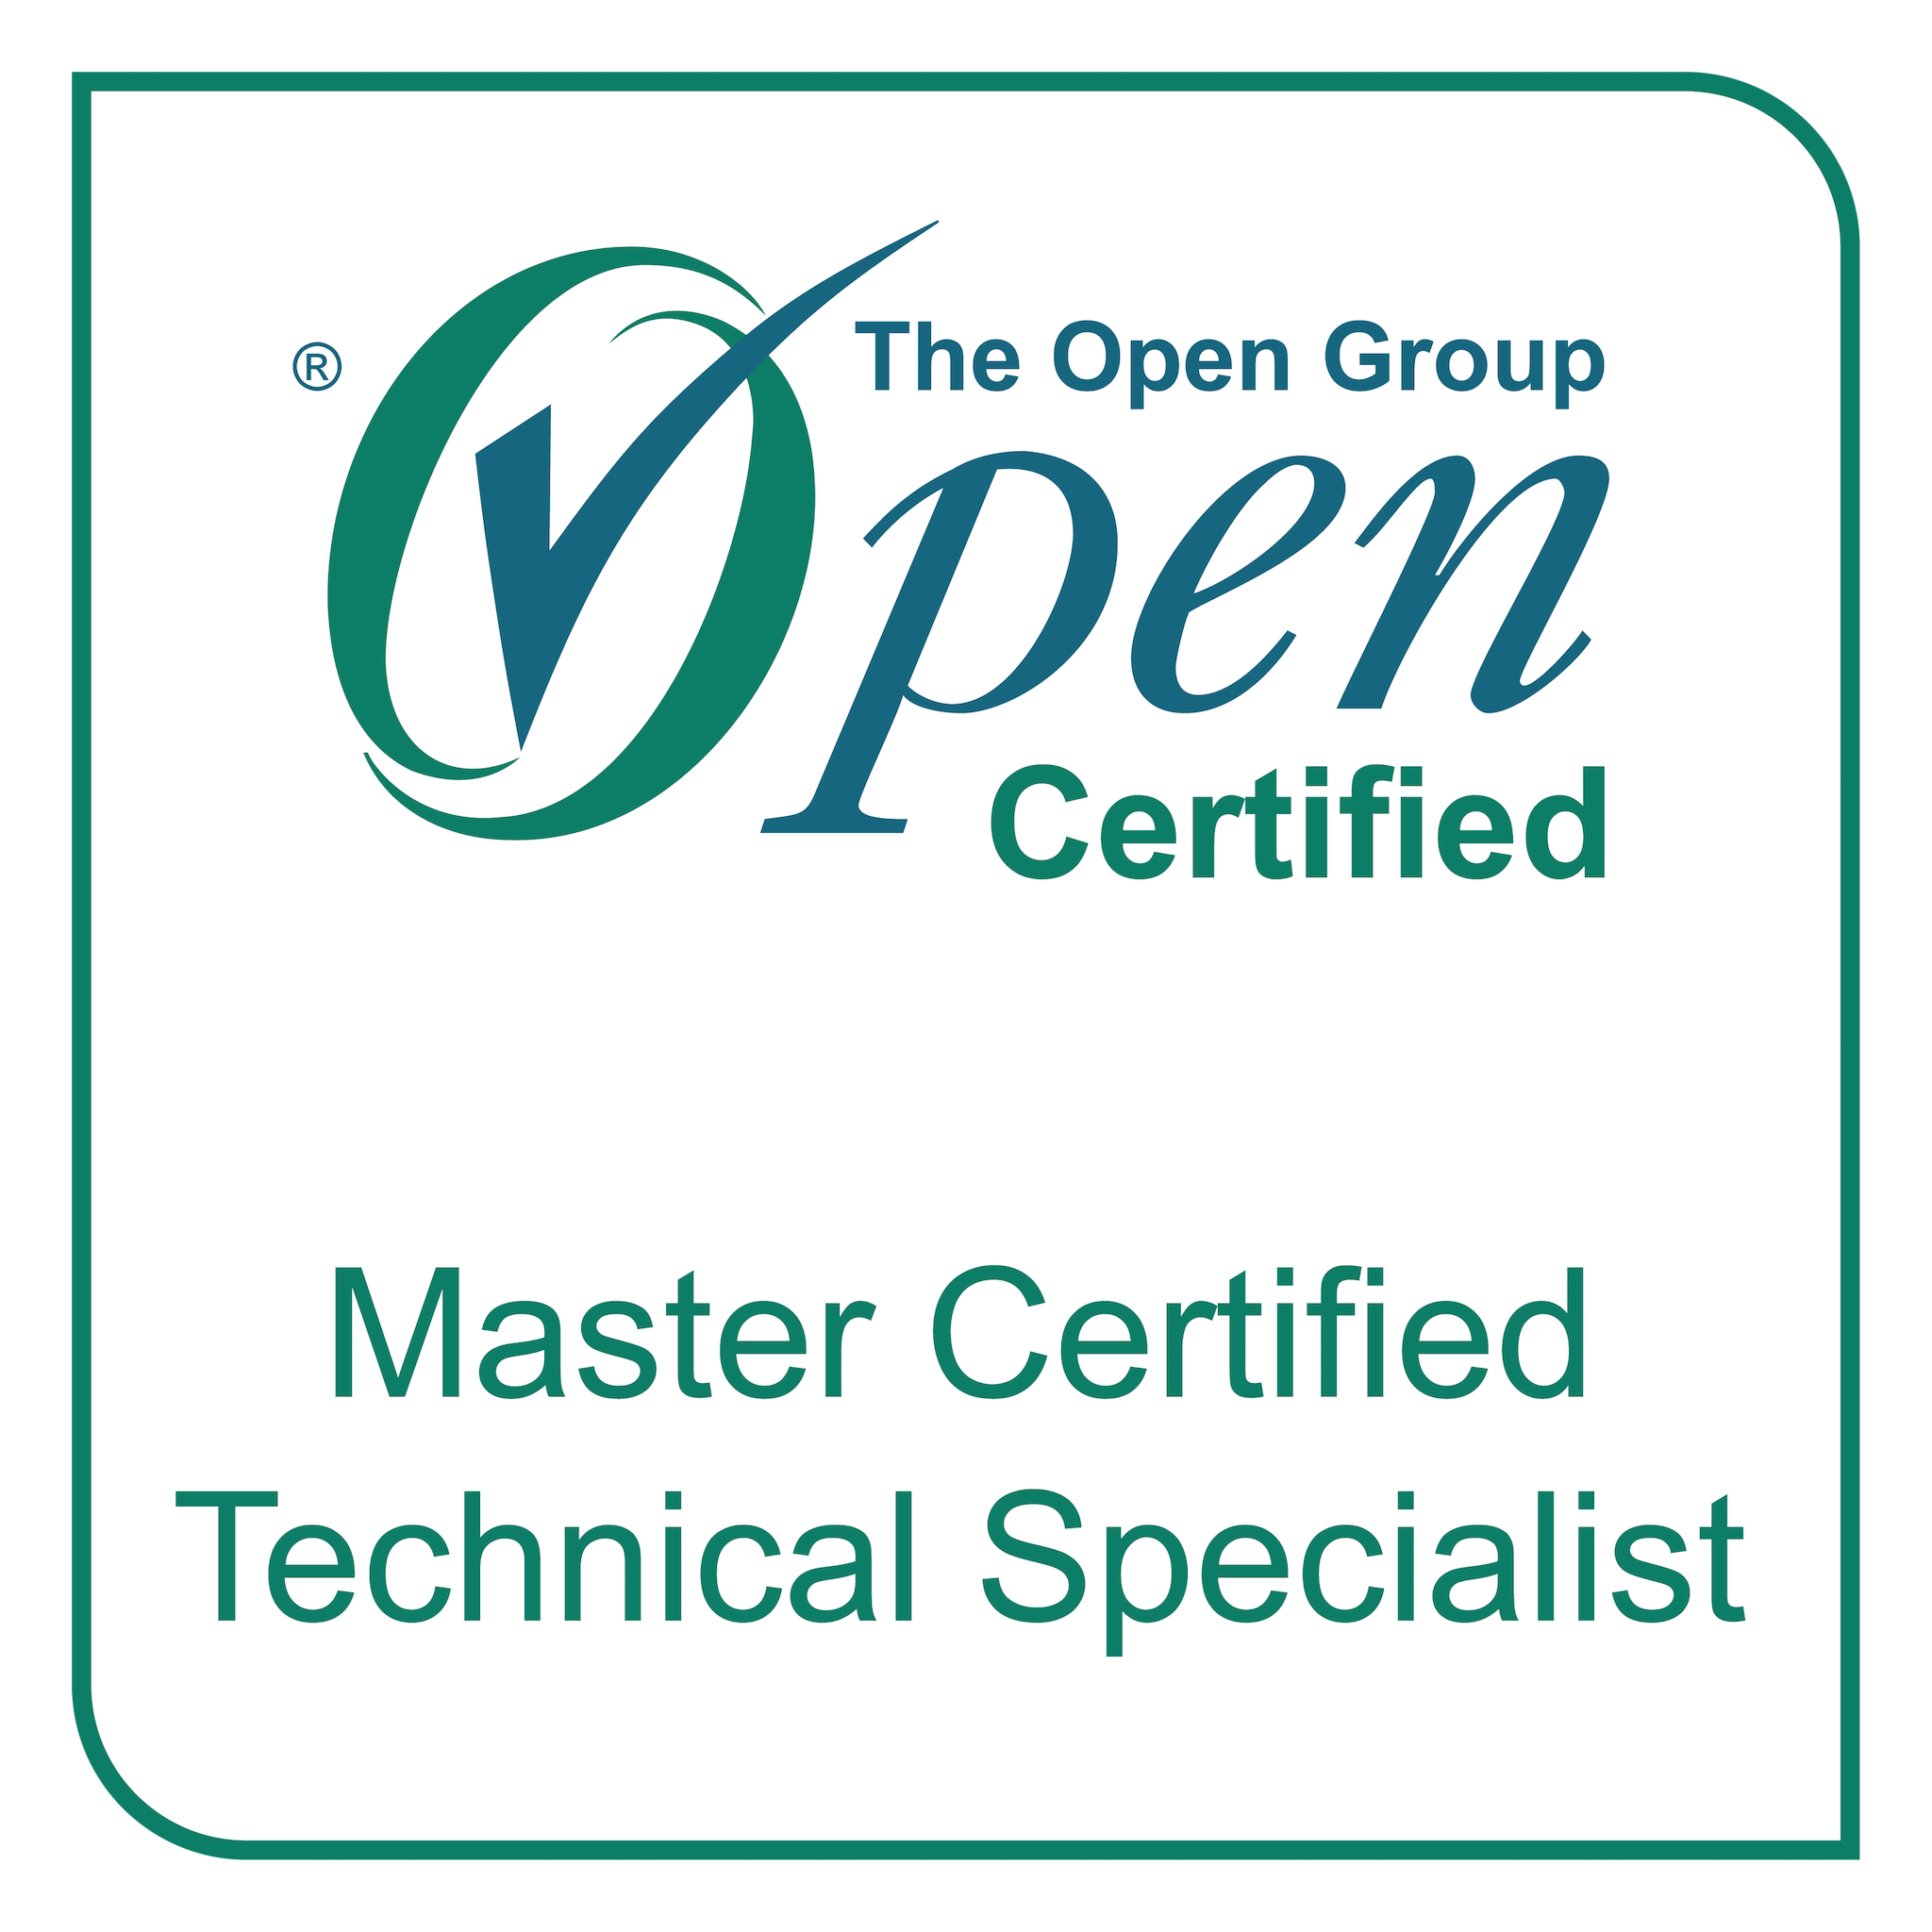 Professional Certification: Master Certified Technical Specialist, Server Systems